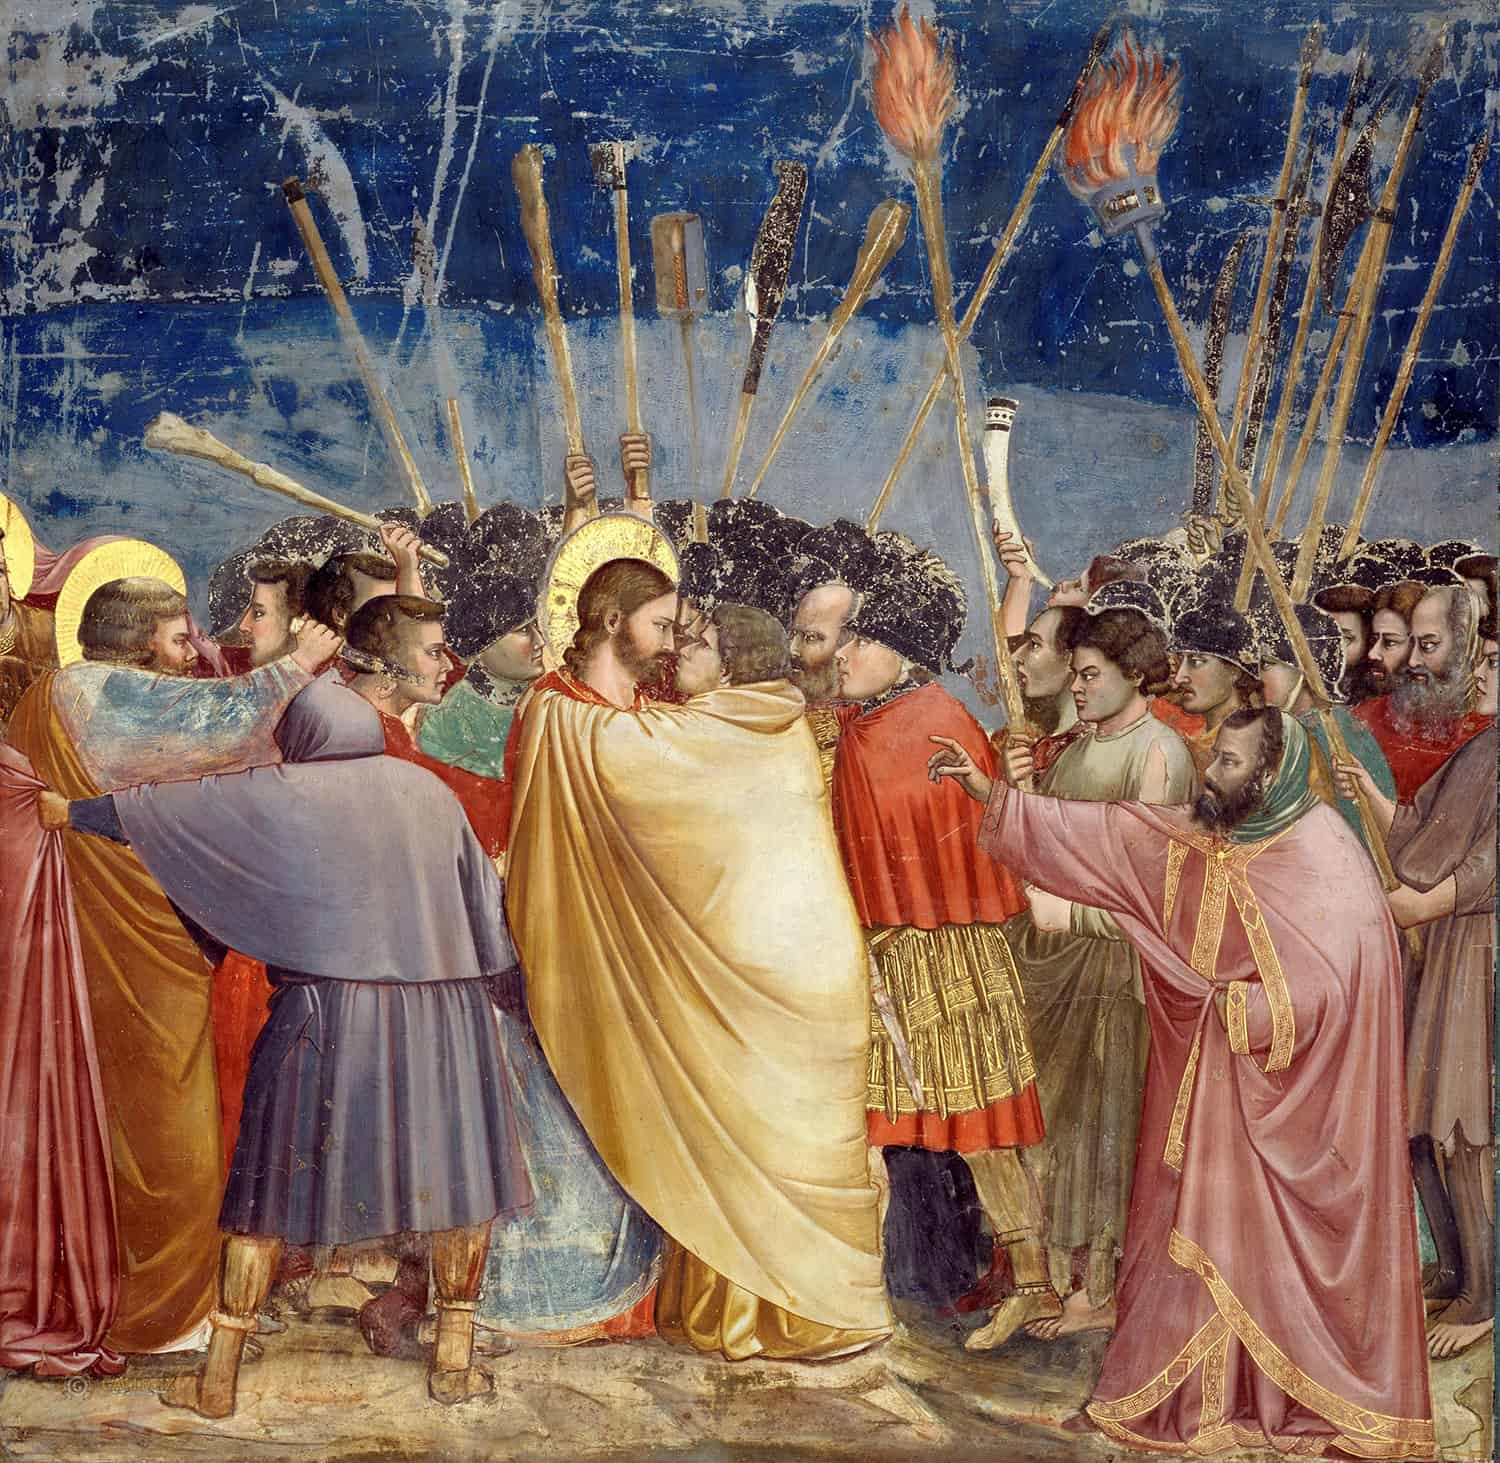 Giotto's Kiss of Judas from the Scrovegni Chapel